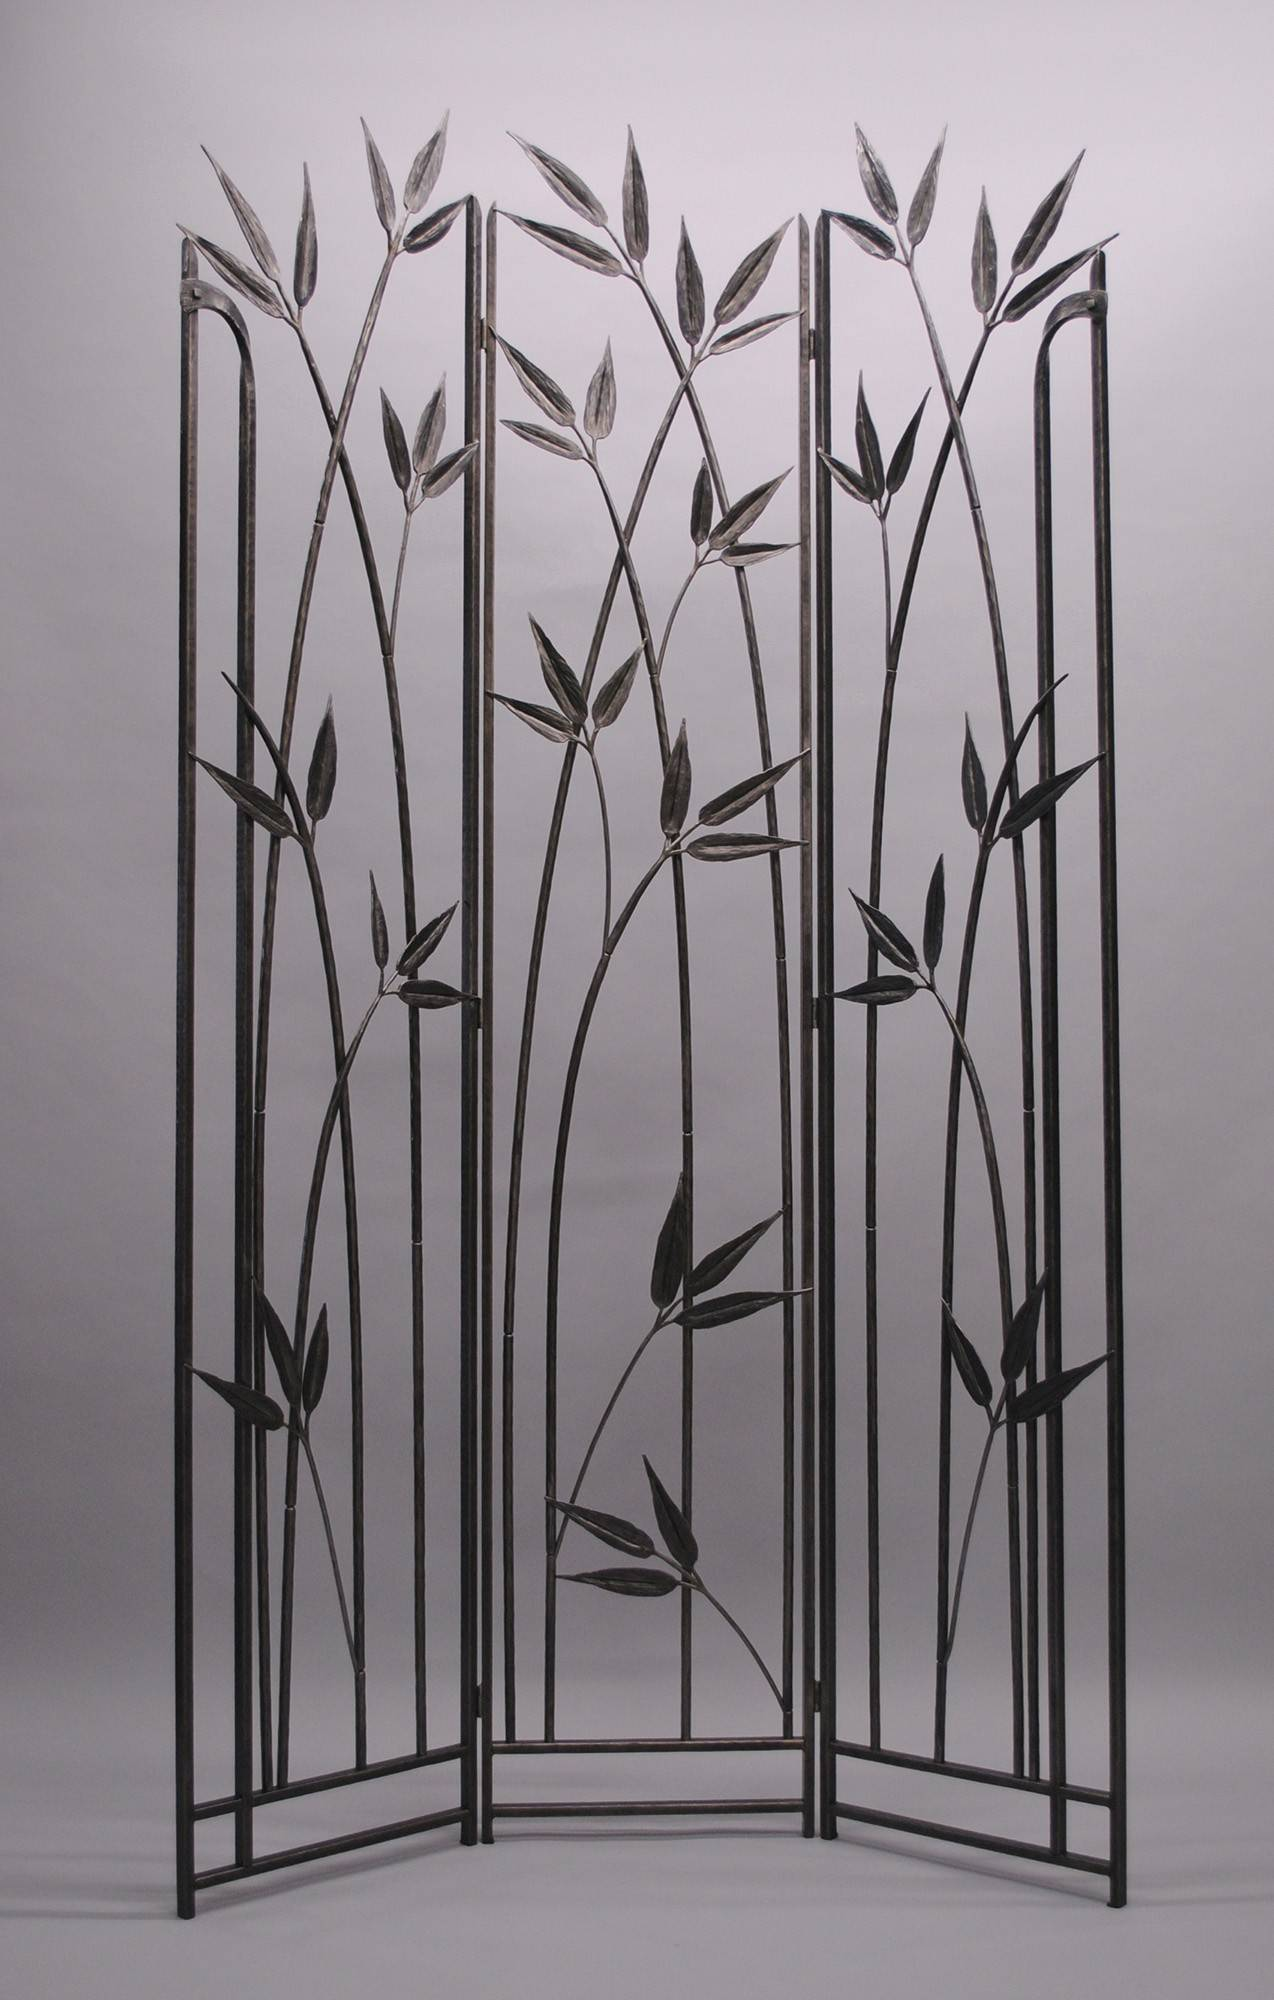 A bamboo-inspired room divider, forged with reclaimed steel by Kyle Lucia.